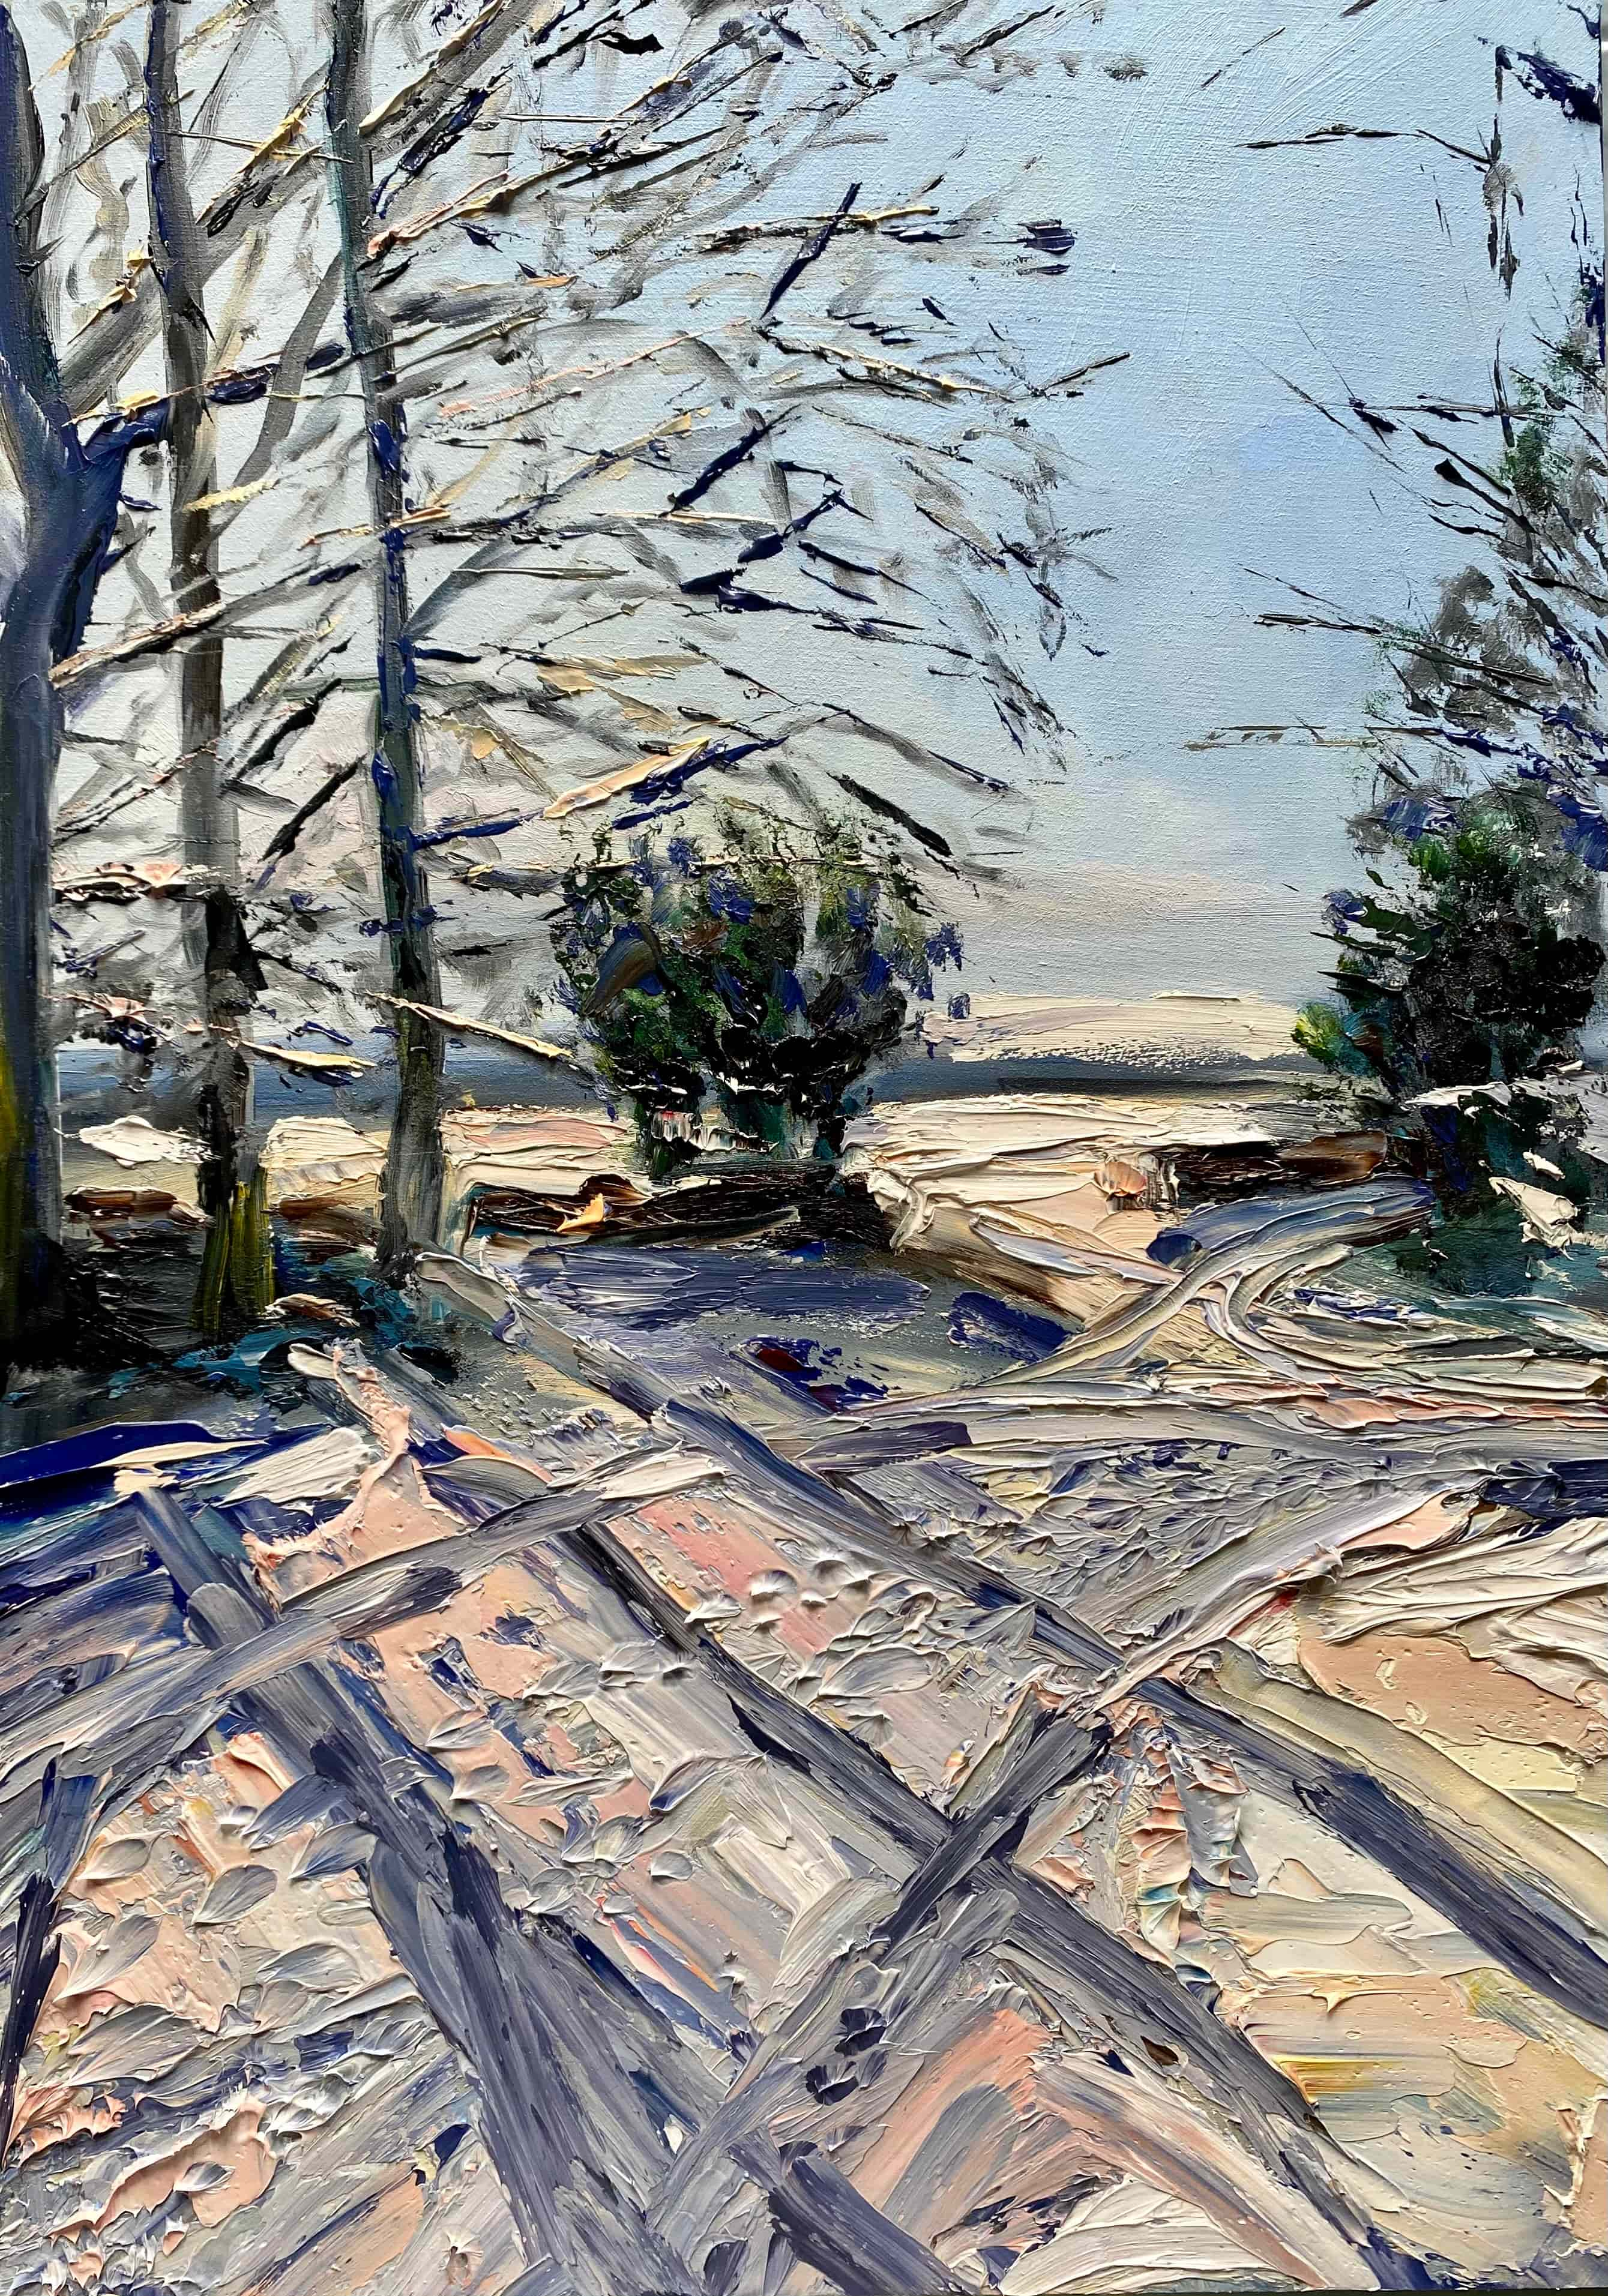 oil painting snow blue white pink shadows trees footprints